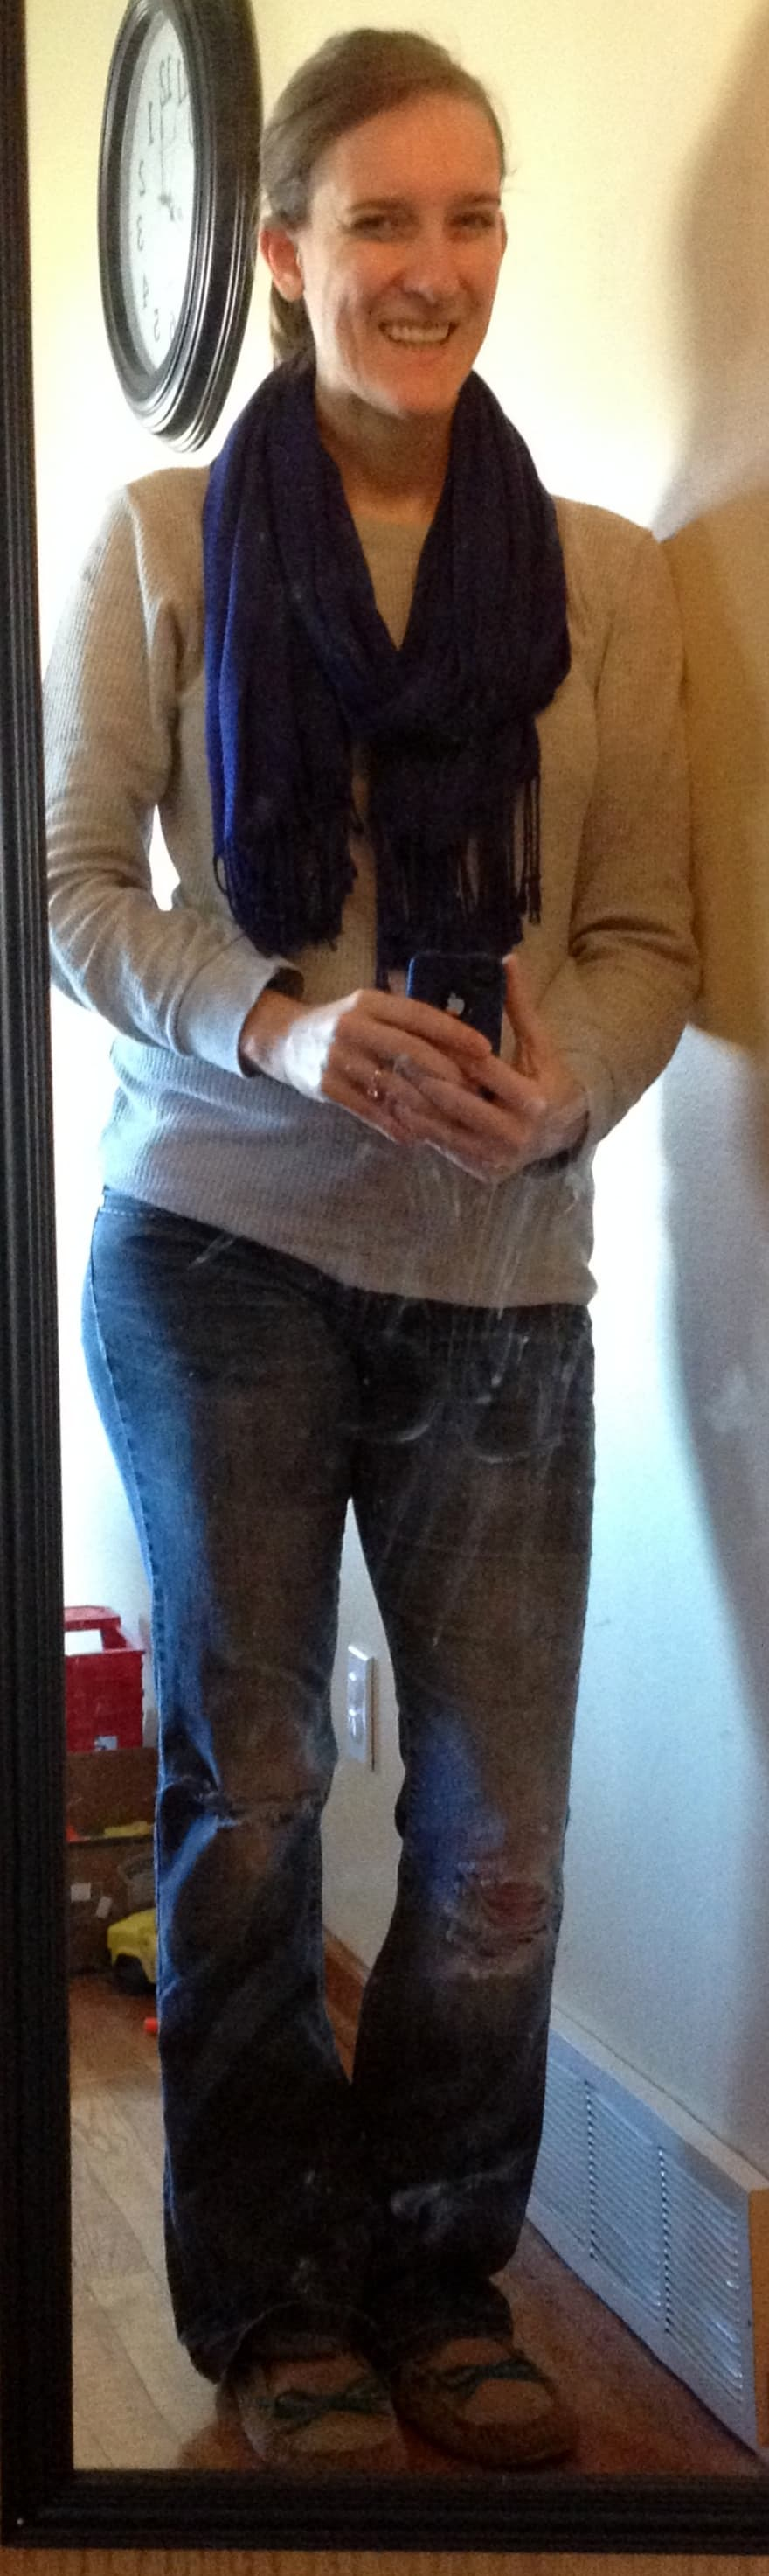 gray long-john shirt, blue scarf, holey jeans, slippers